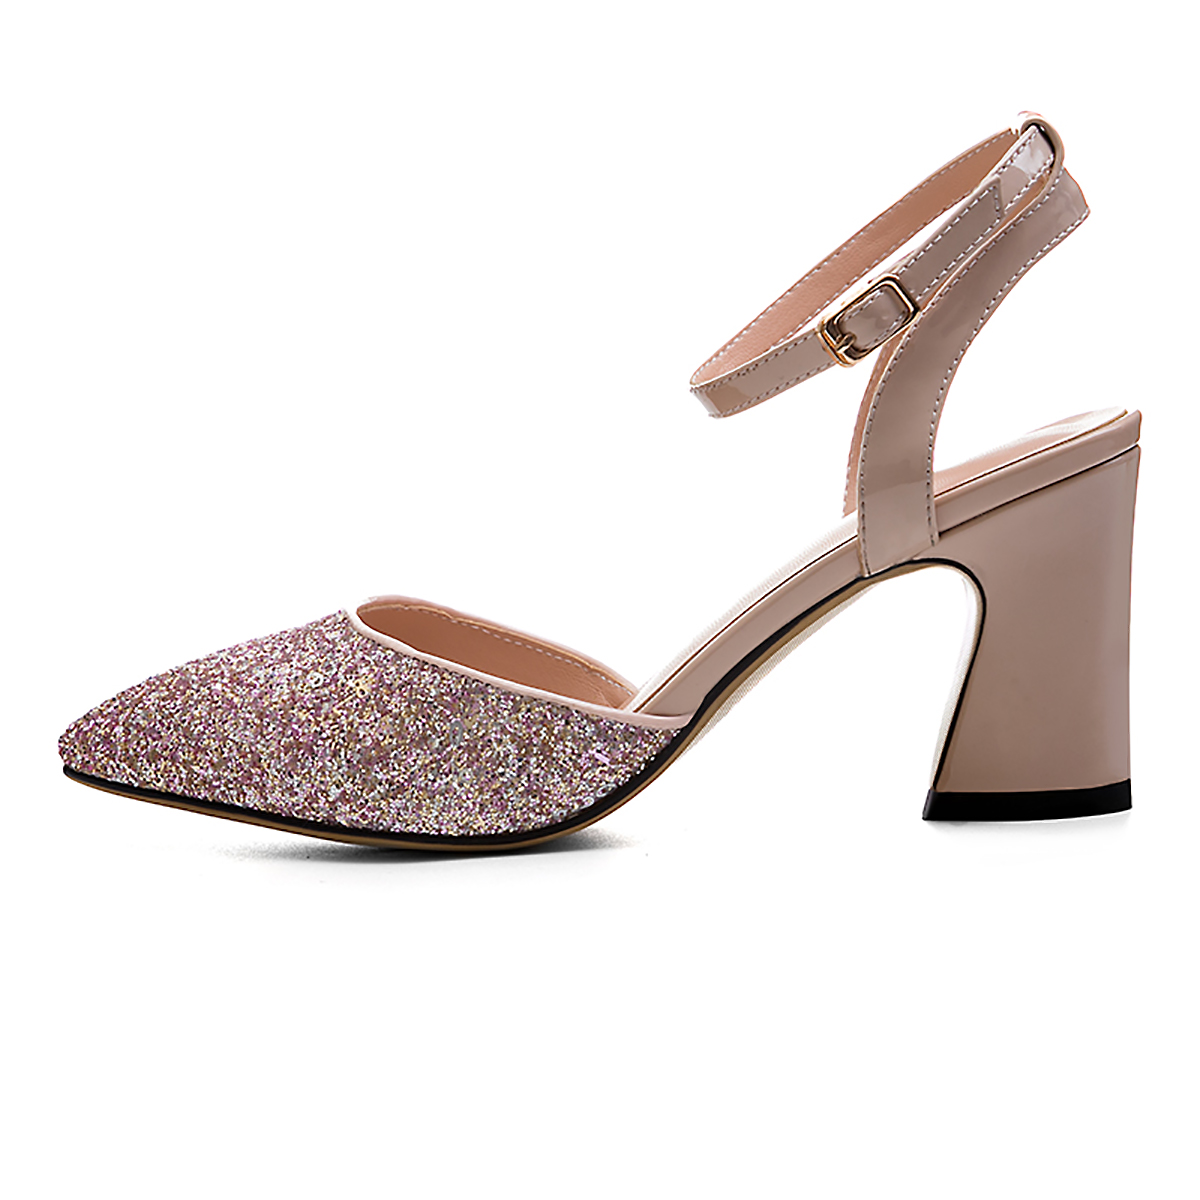 b493b546e4a Arden Furtado new 2018 summer high heels 8cm bling bling pointed toe ankle  strap fashion sequined sandals for woman party shoes